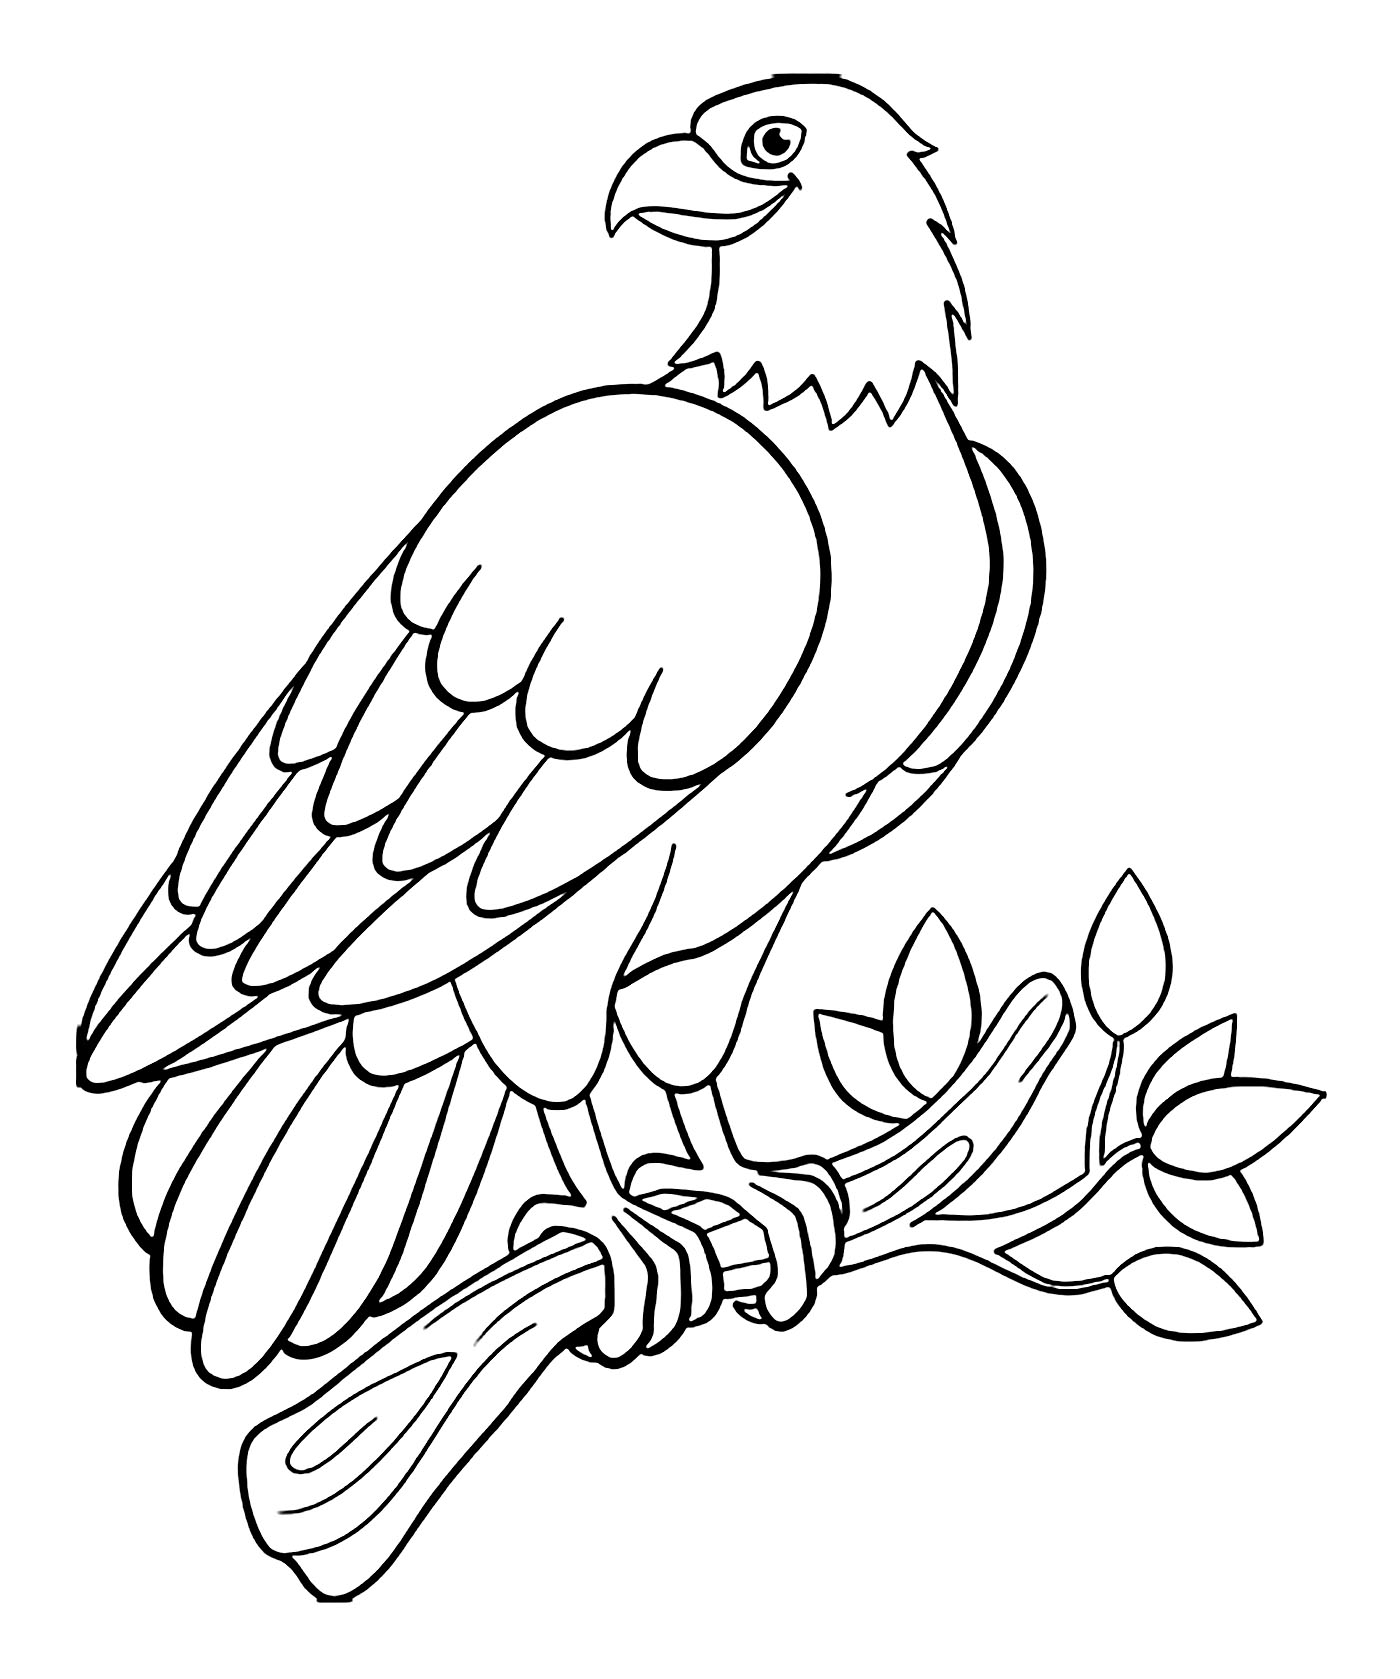 printable bird coloring pages birds to print birds kids coloring pages bird coloring printable pages